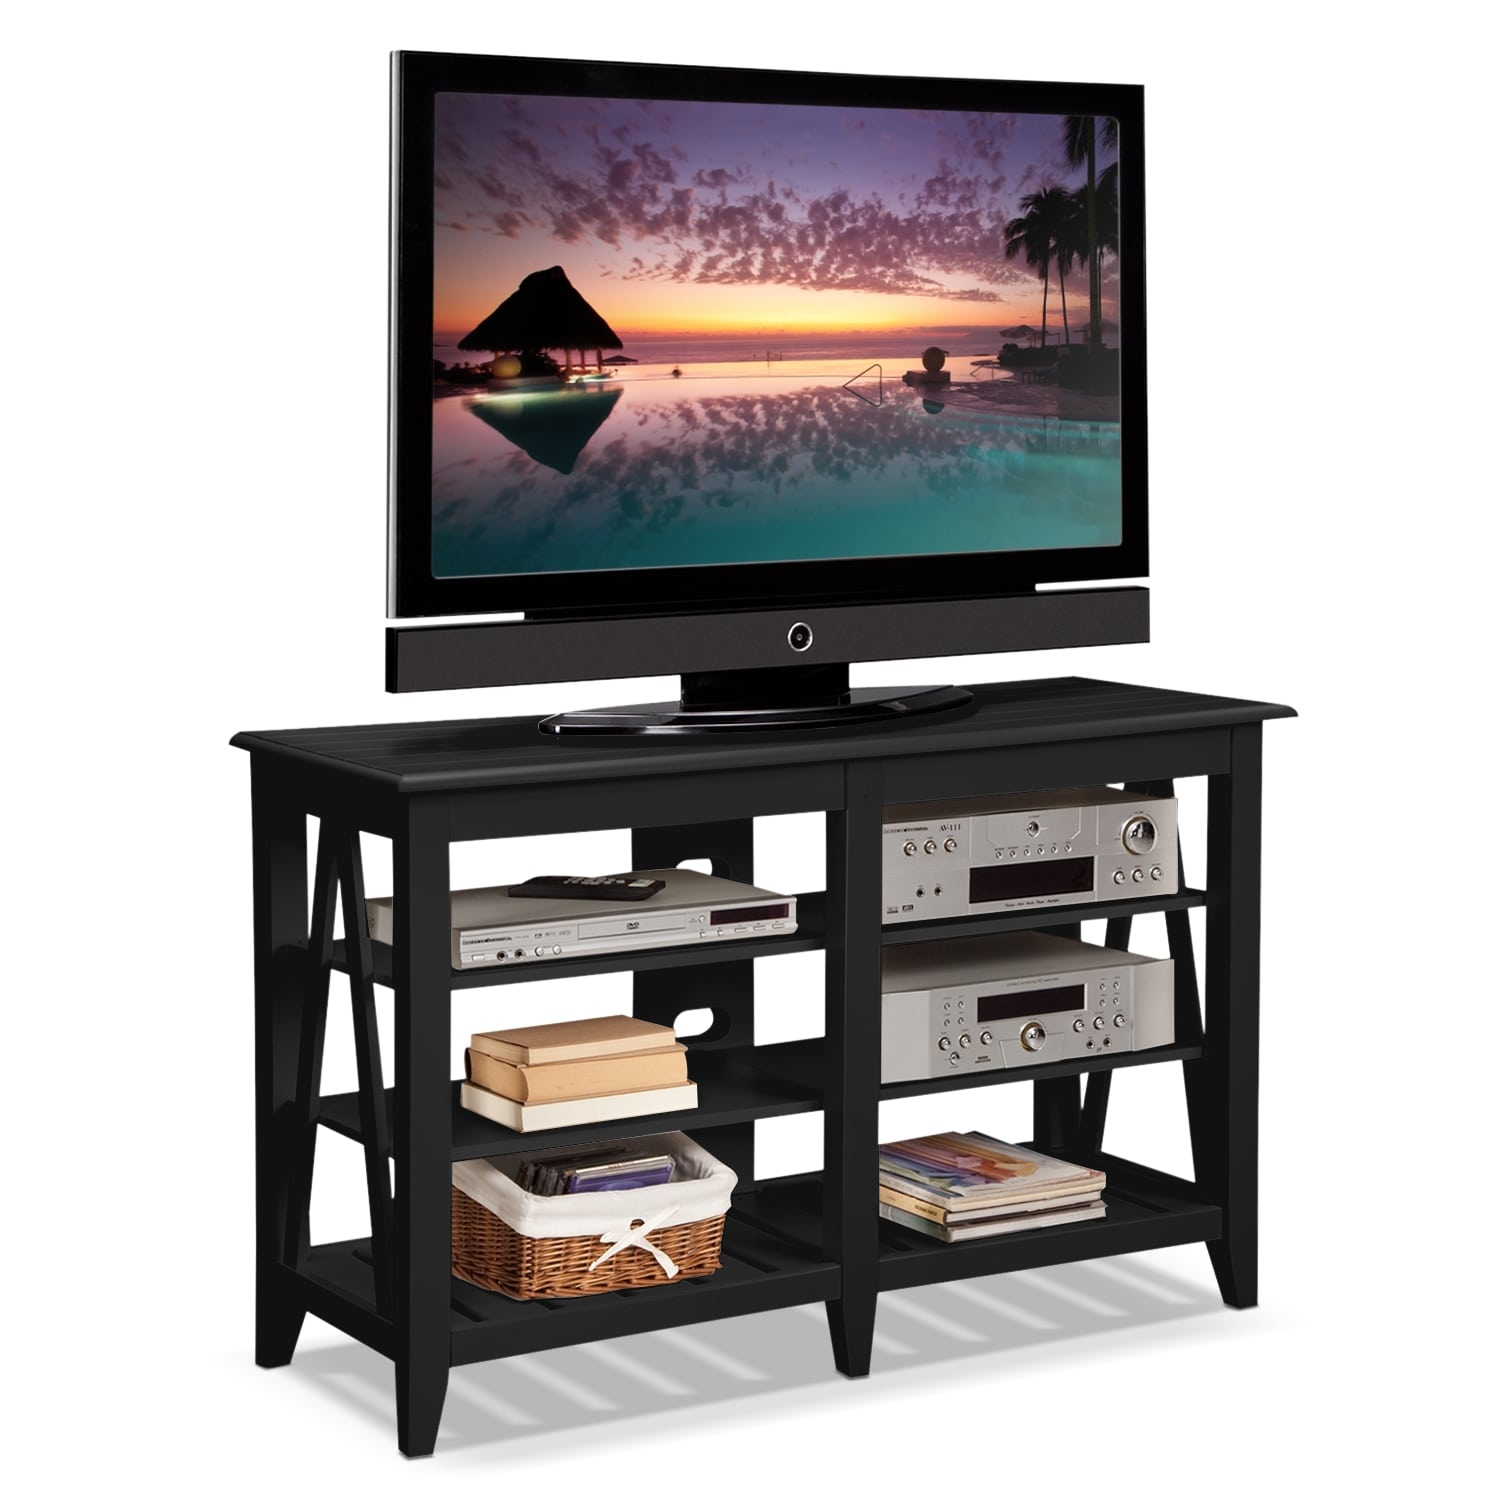 276769 the plantation cove coastal tv stand collection american  at fashall.co